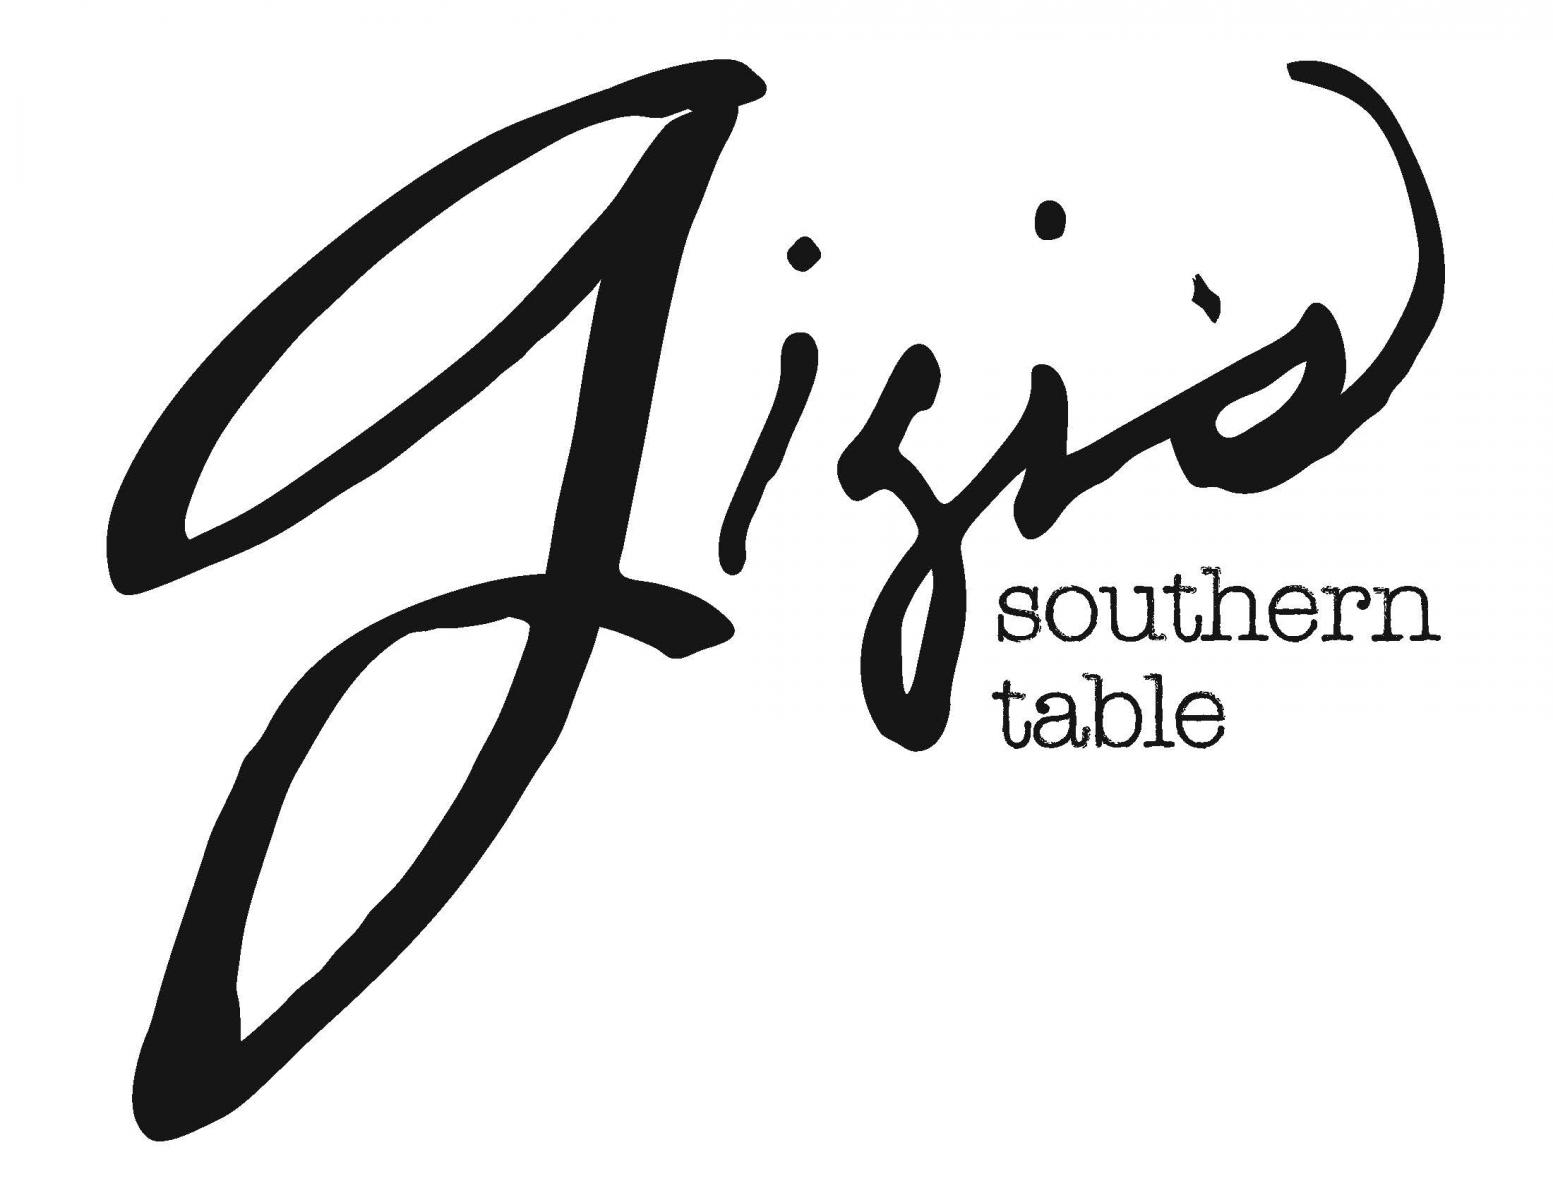 Gigi's Southern Table